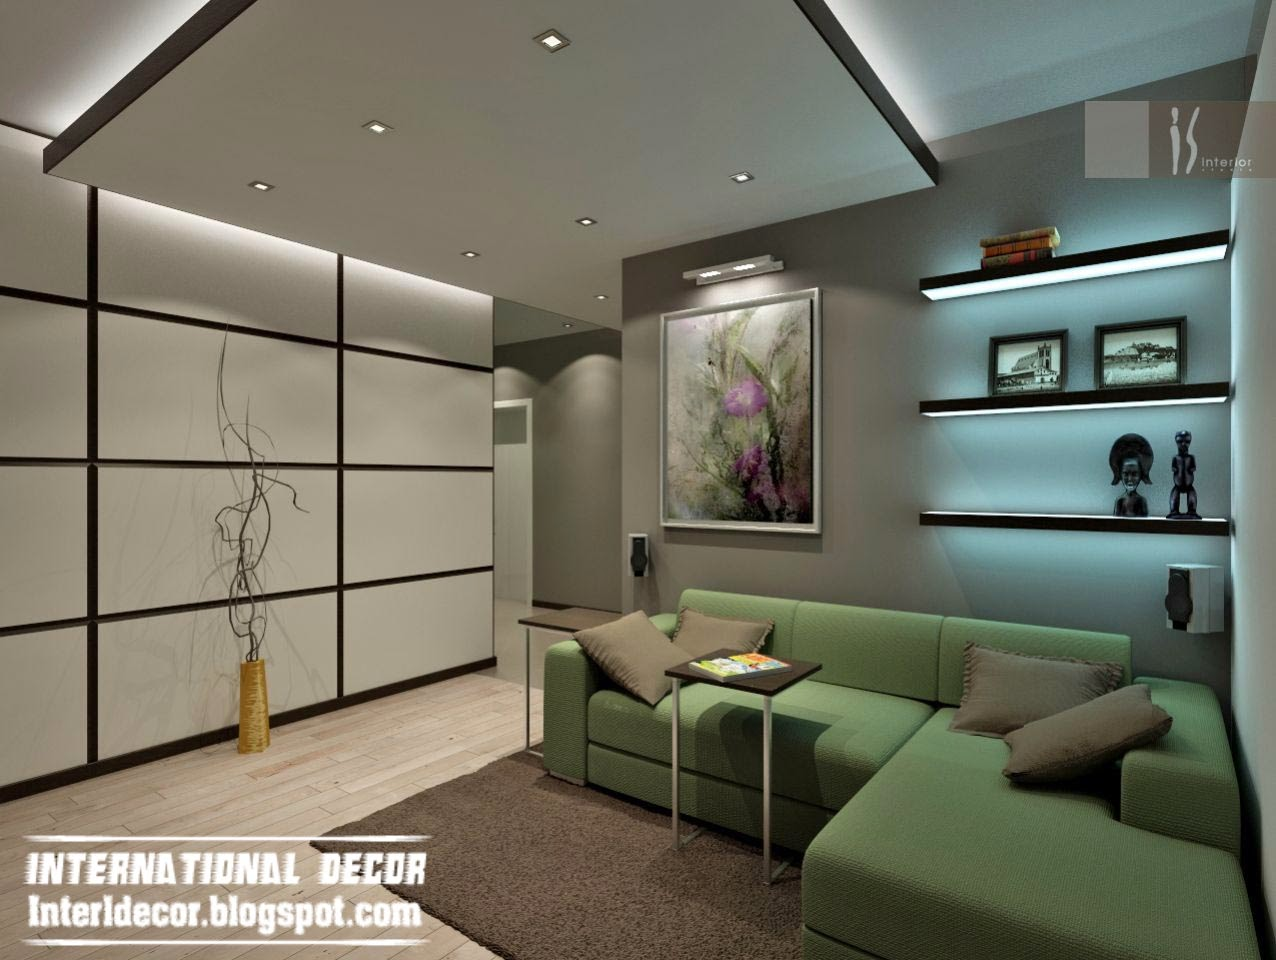 Suspended ceilings pop design for living room 2015 for Pop design for kitchen